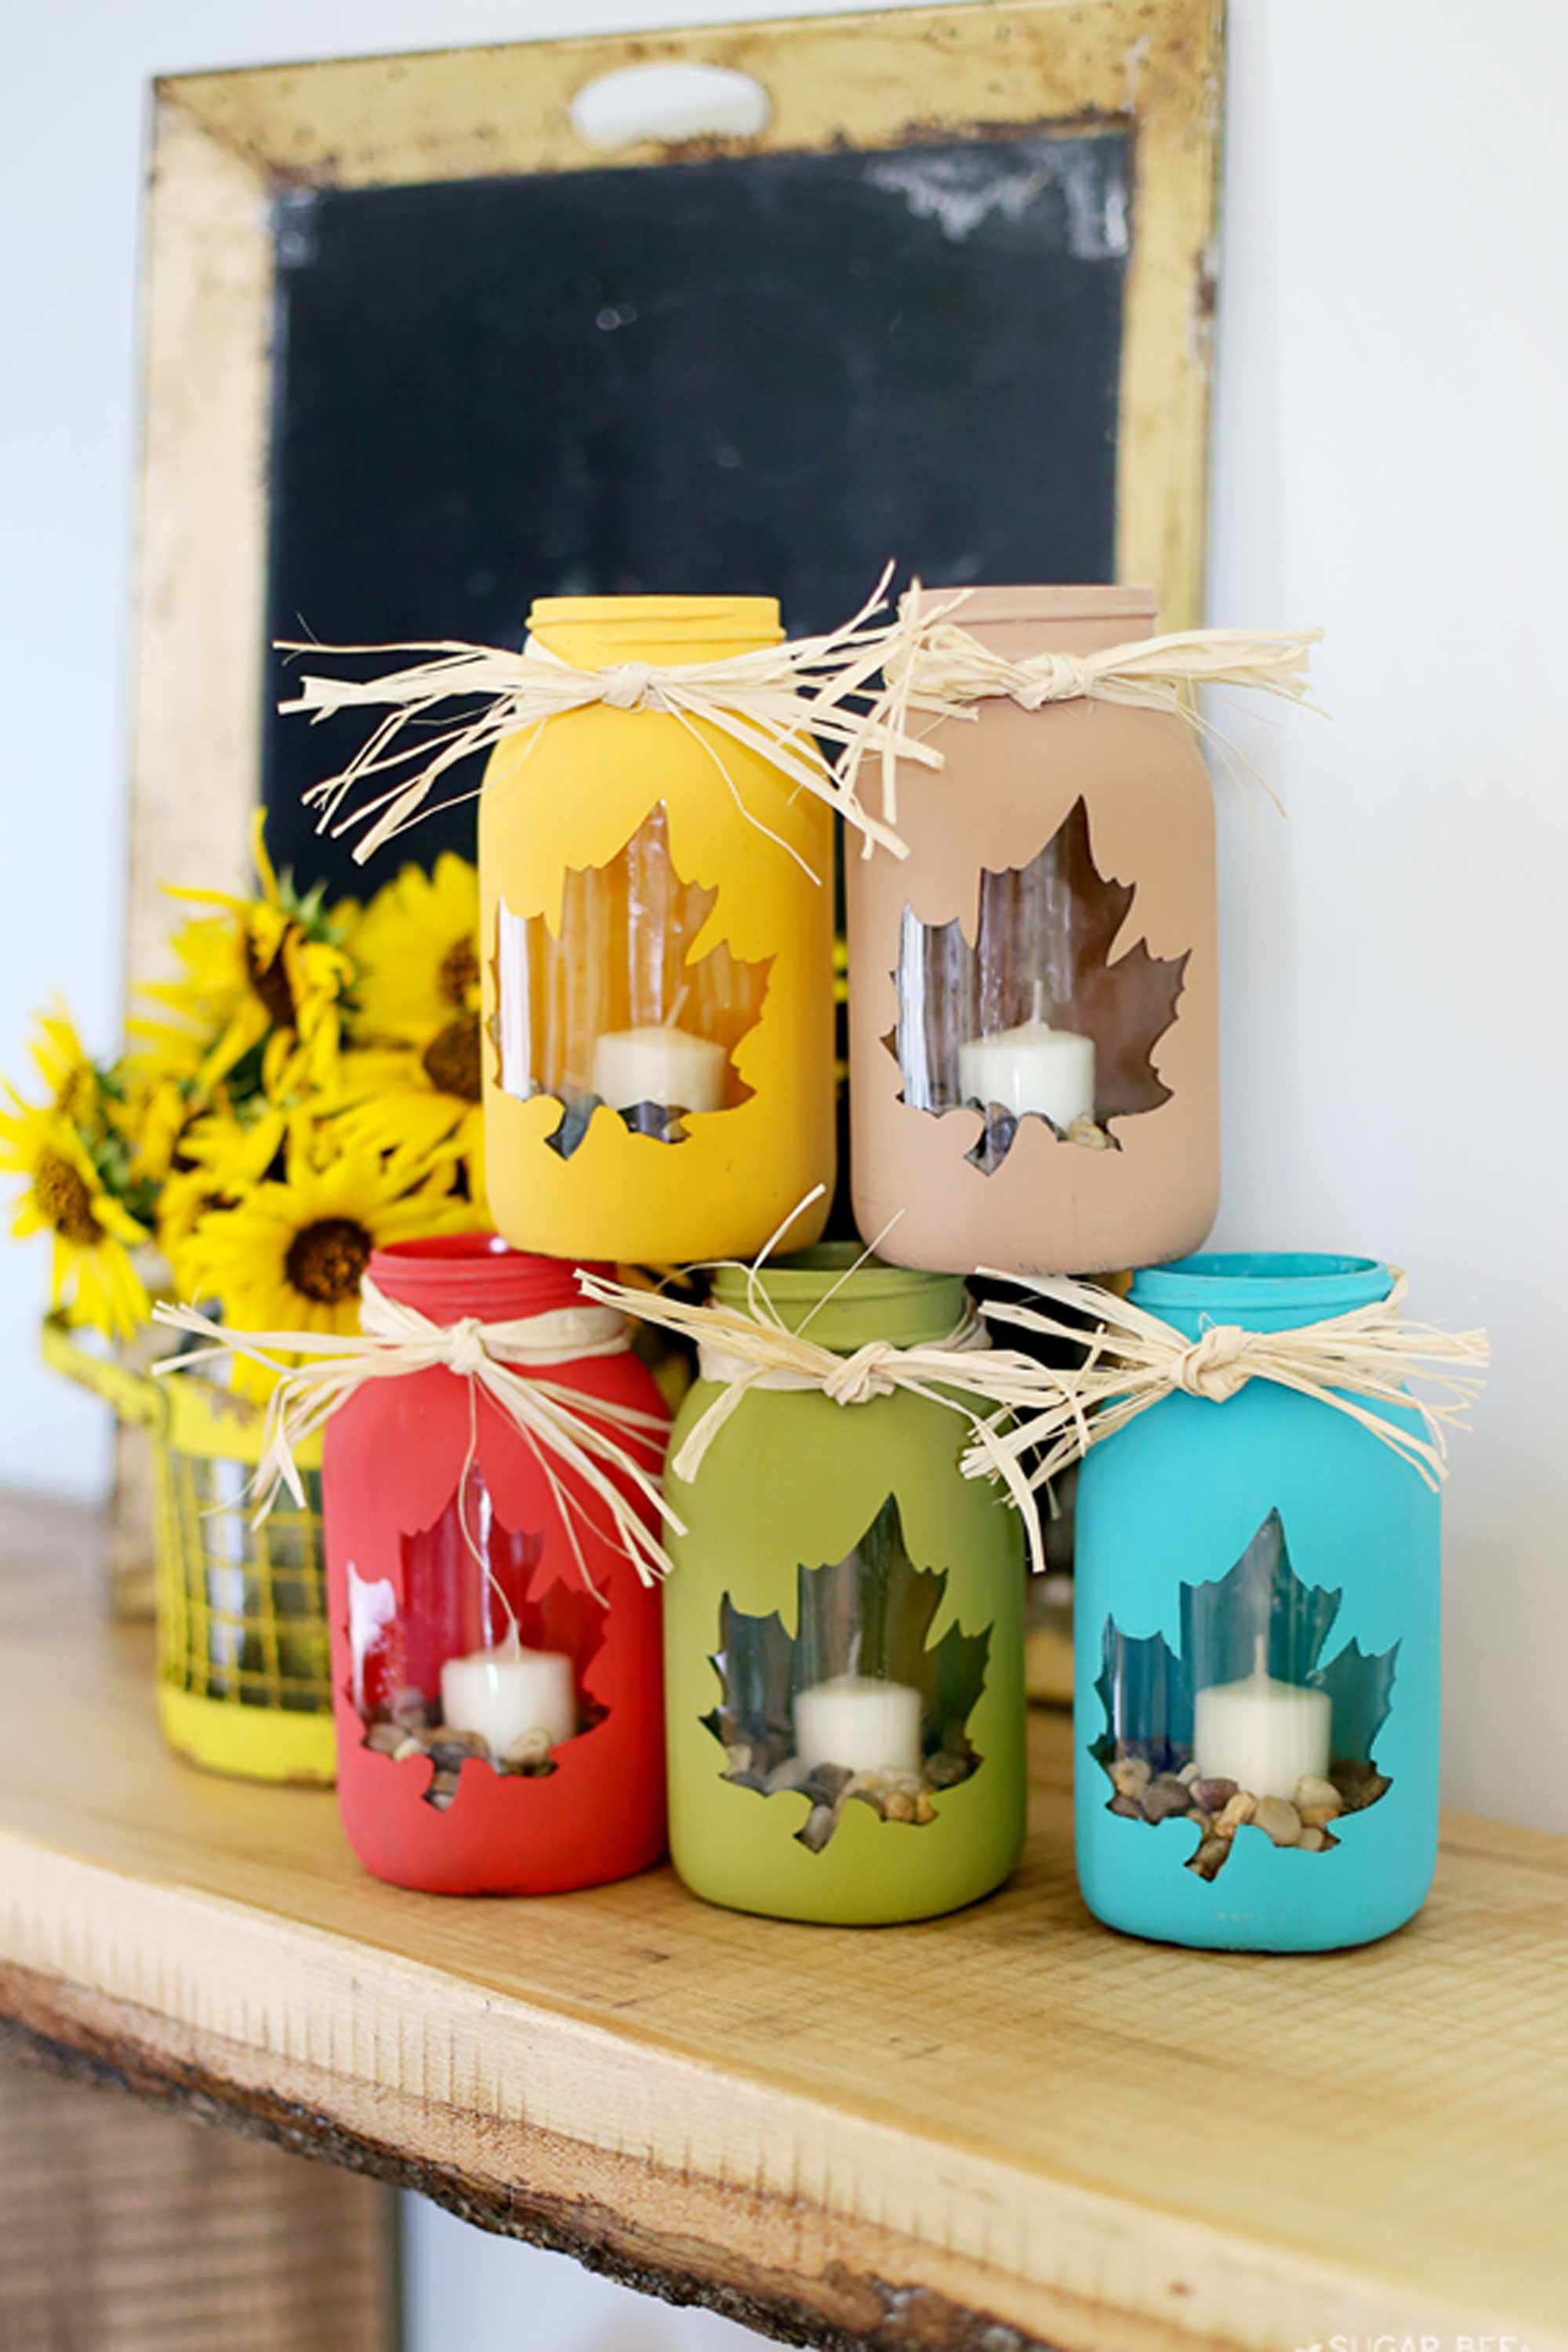 Emejing Decorating Mason Jars Pictures Home Design Ideas